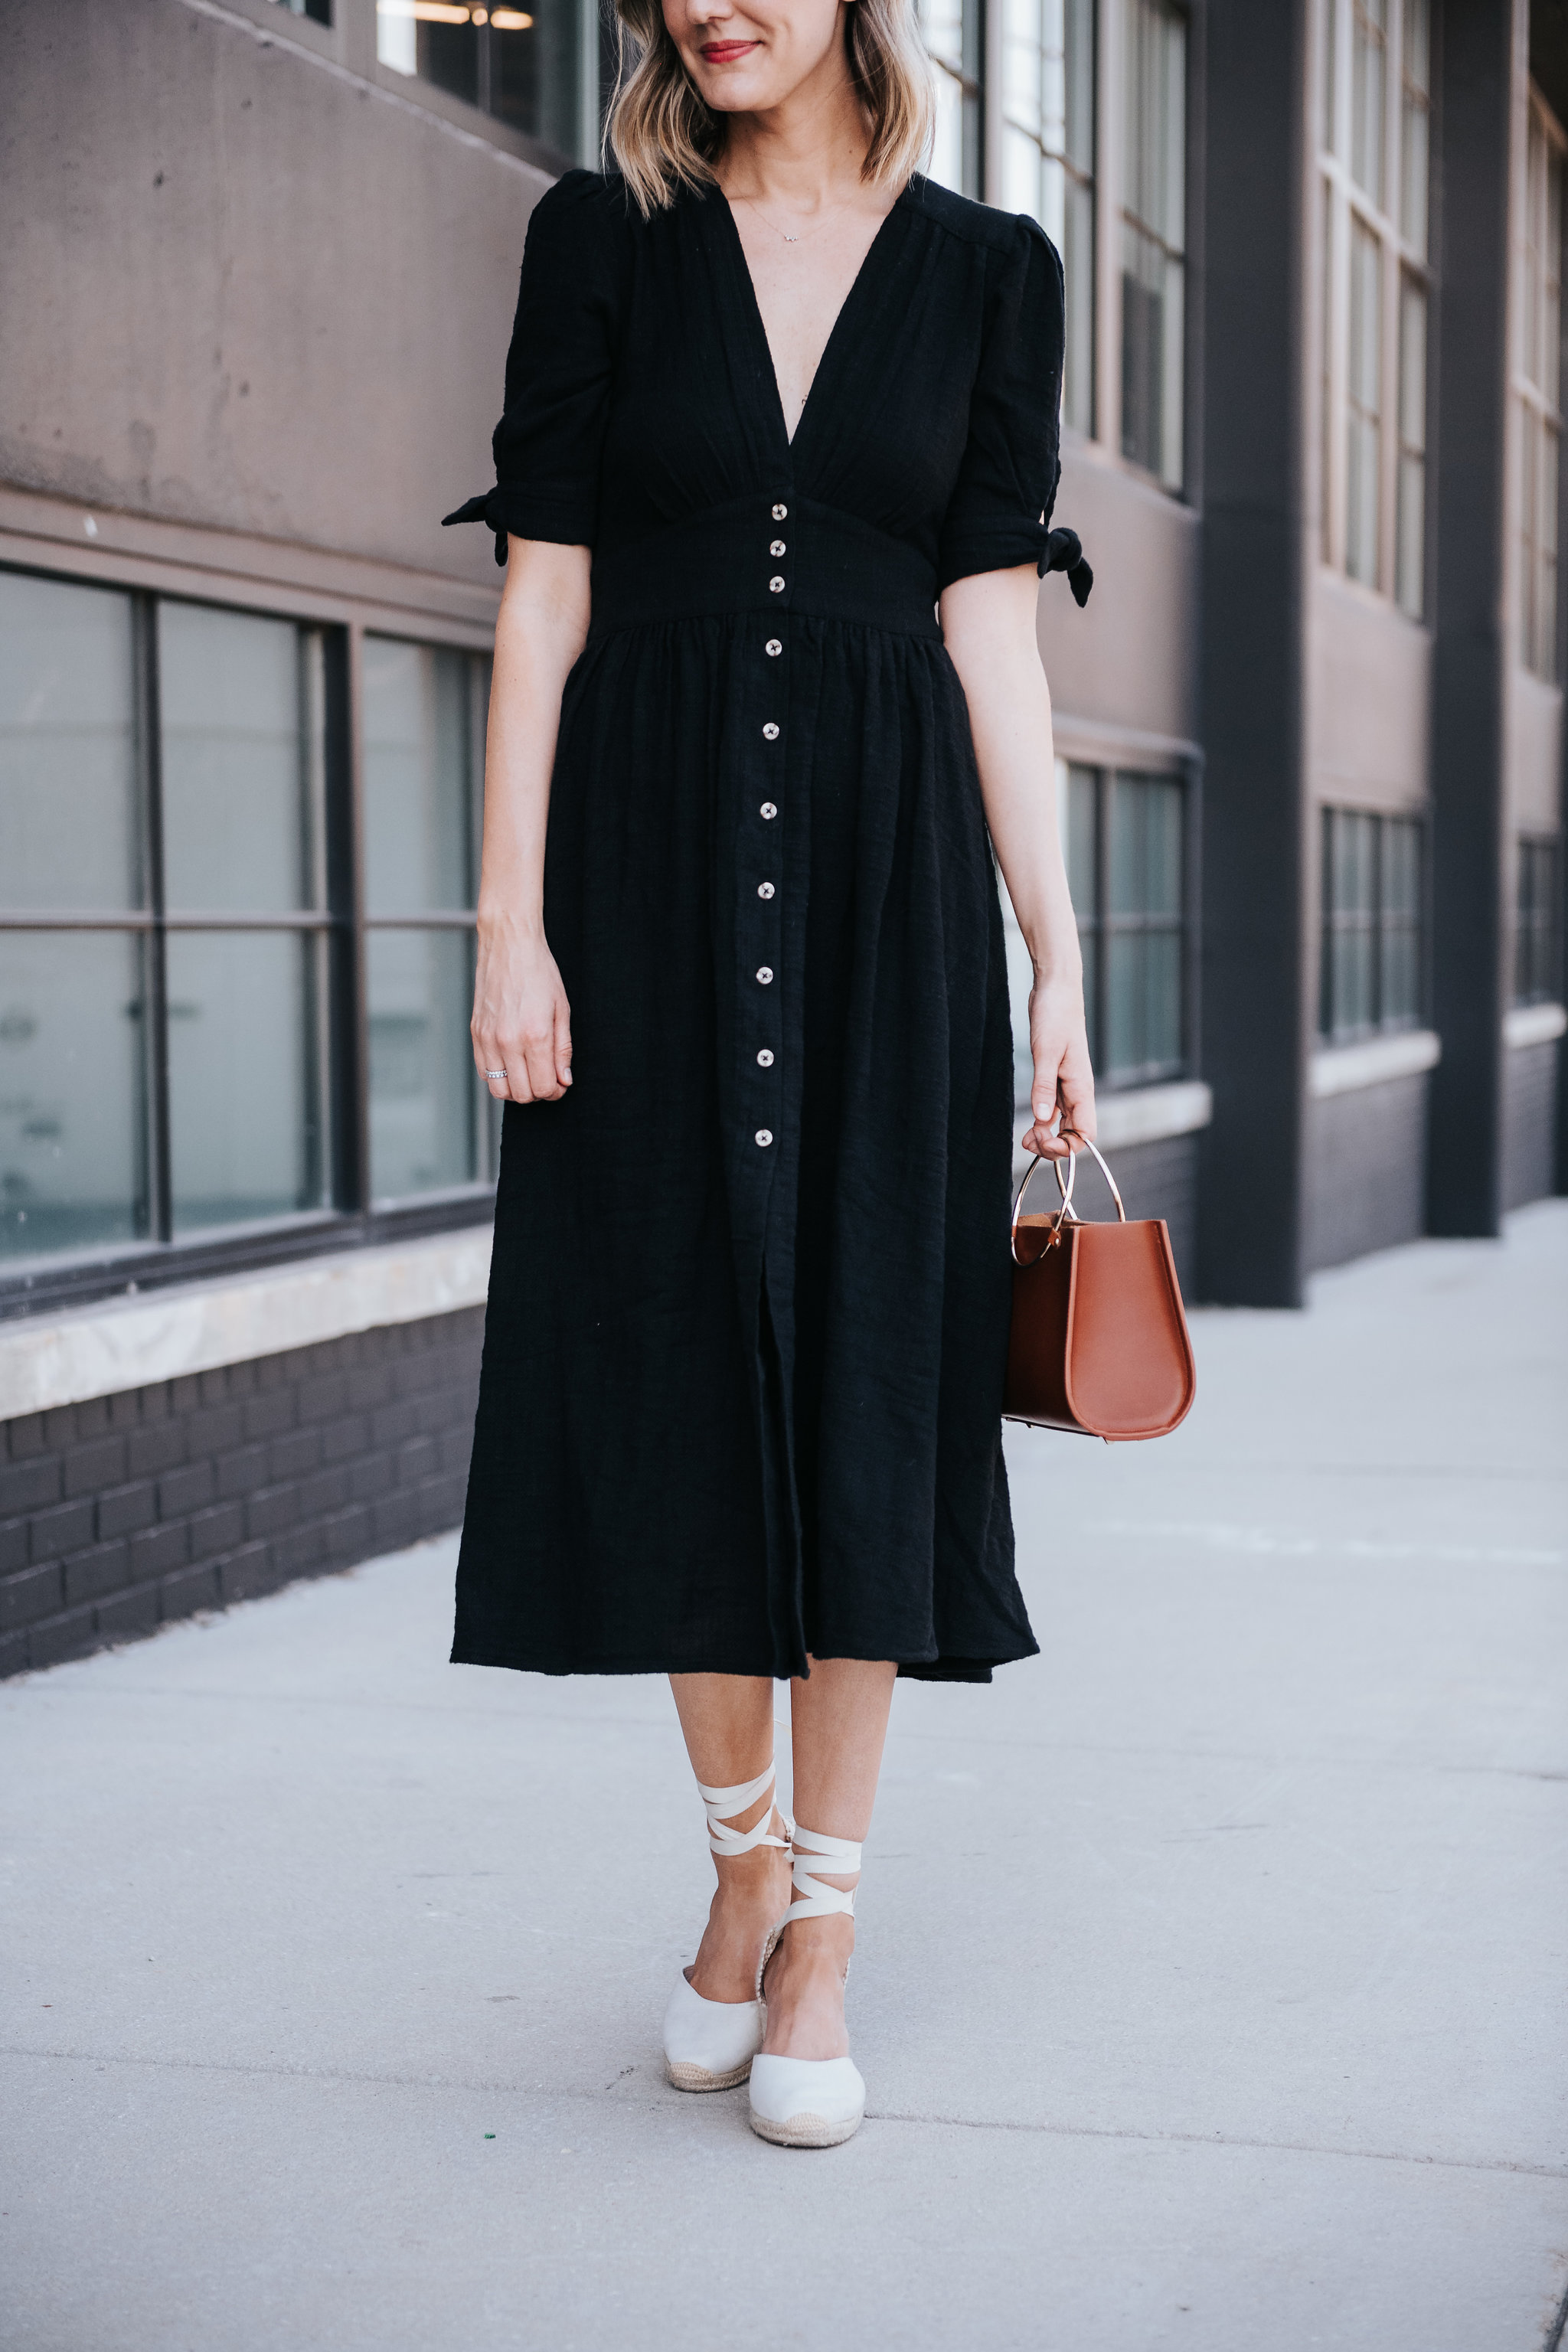 free people midi dress love of my life how to wear midi dress